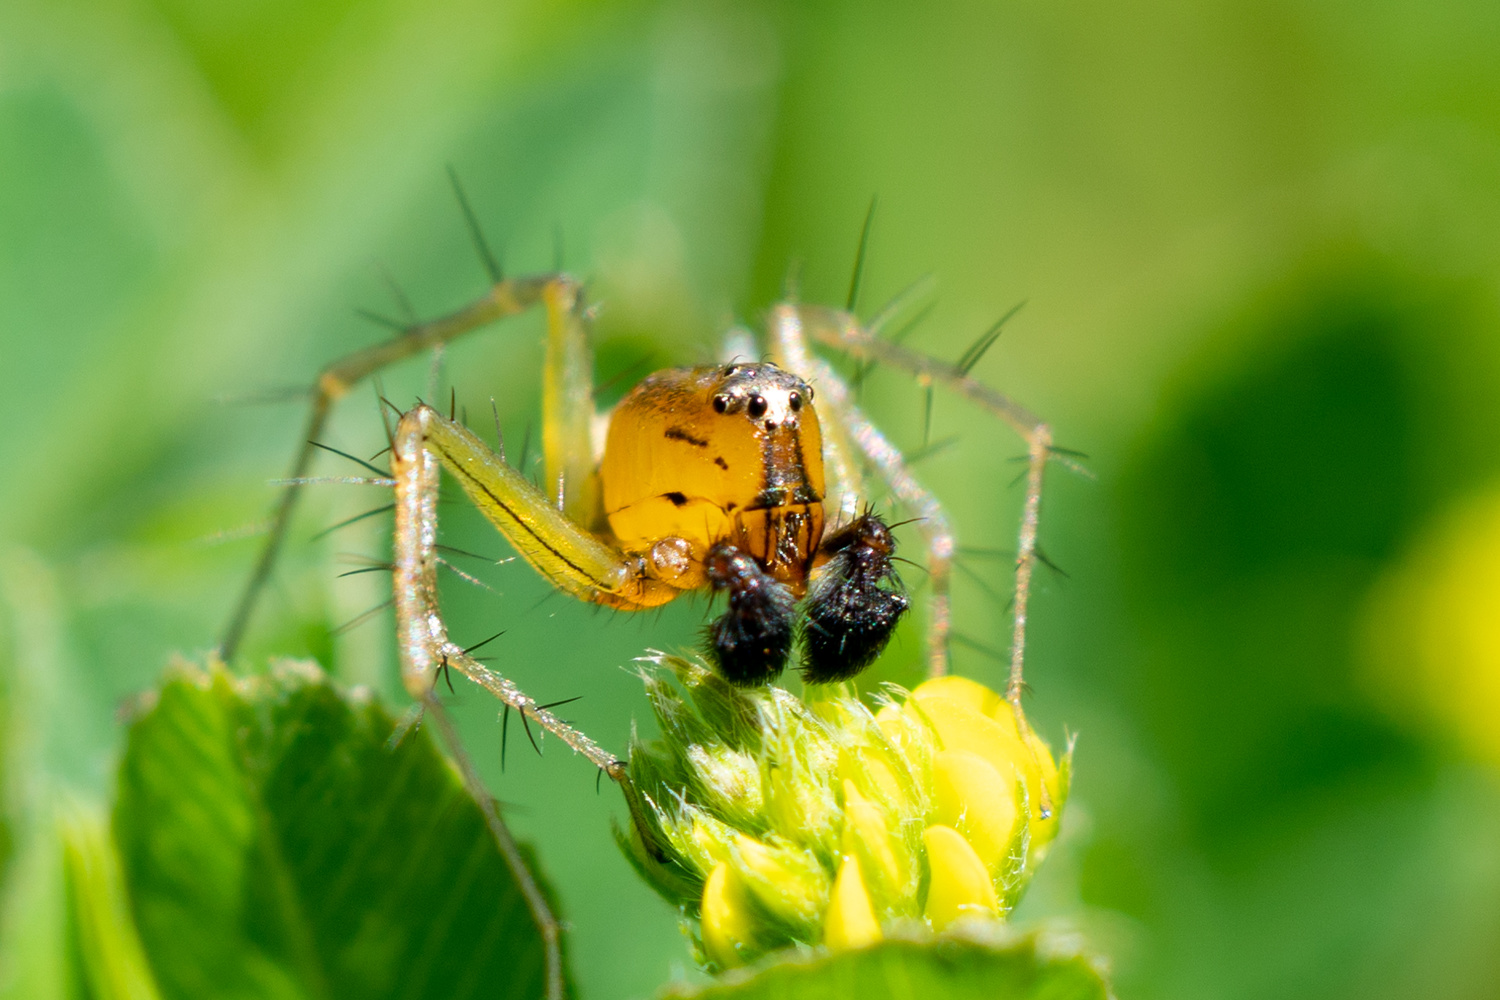 Cute Spider by Justin Lauria